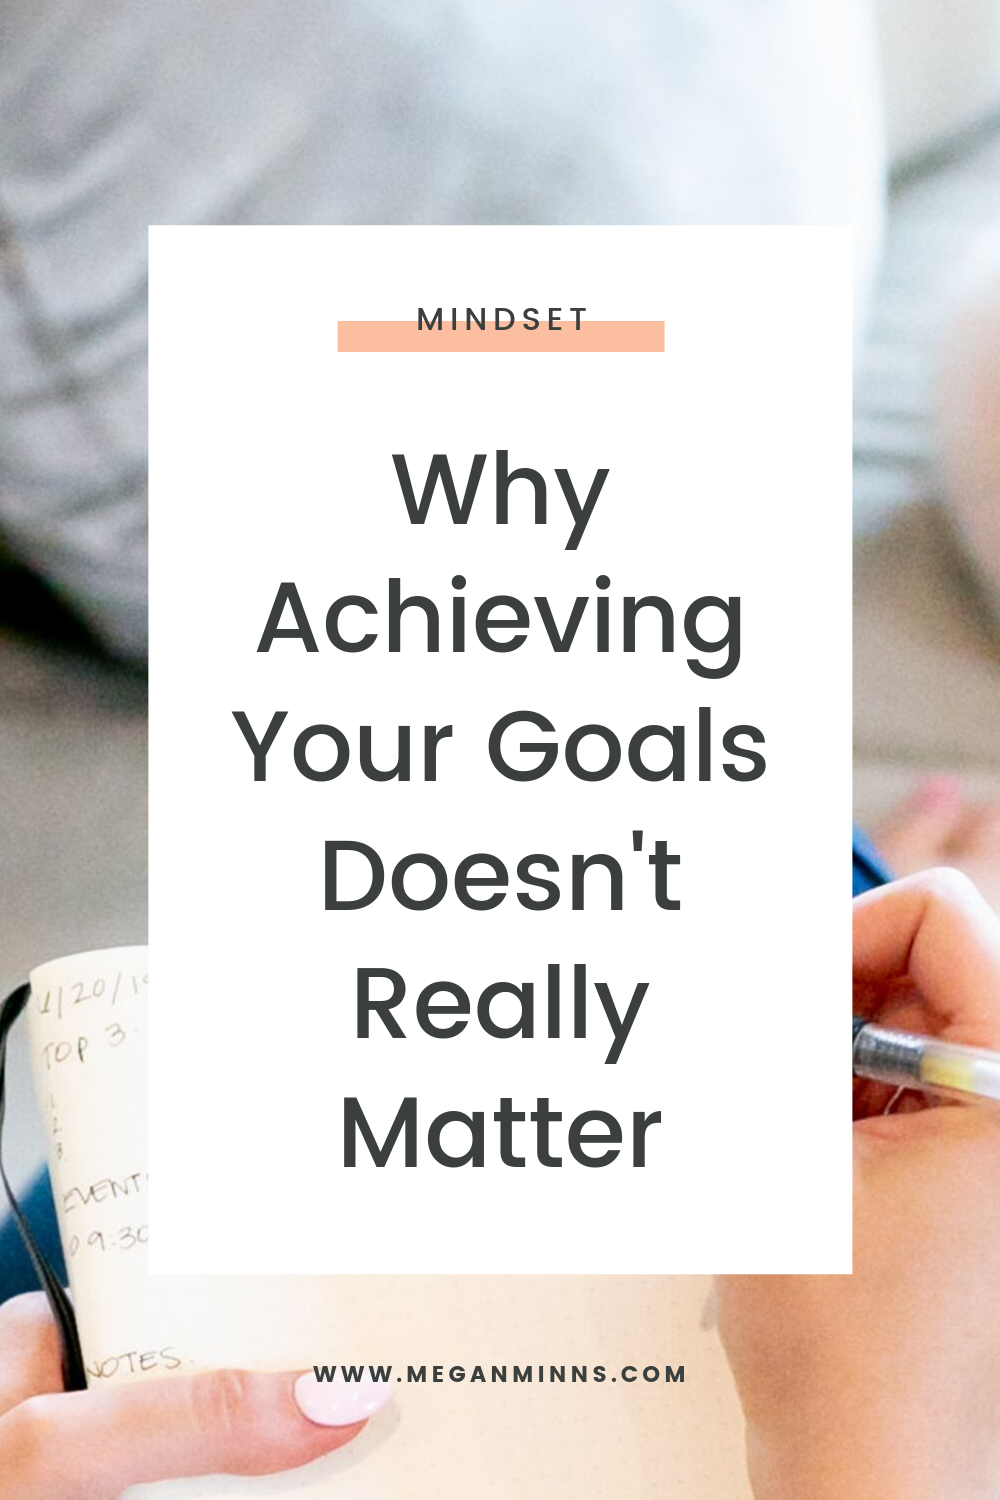 """Goal Achievement language and behavior is rampant, especially for us online business owners. We're always hearing things like """"crushing your goals"""" """"hitting your goals"""" and the like.   The reality is, achieving your goals doesn't matter --it doesn't actually reflect what's most important.   In this episode, I'll be talking about why we keep thinking that achieving our goals is the most important thing, how to reframe that narrative, and how to ultimately set yourself on a path of happiness and fulfillment.   READ THE FULL BLOG POST ➡️ https://meganminns.com/blog/achieving-your-goals-doesnt-matter"""